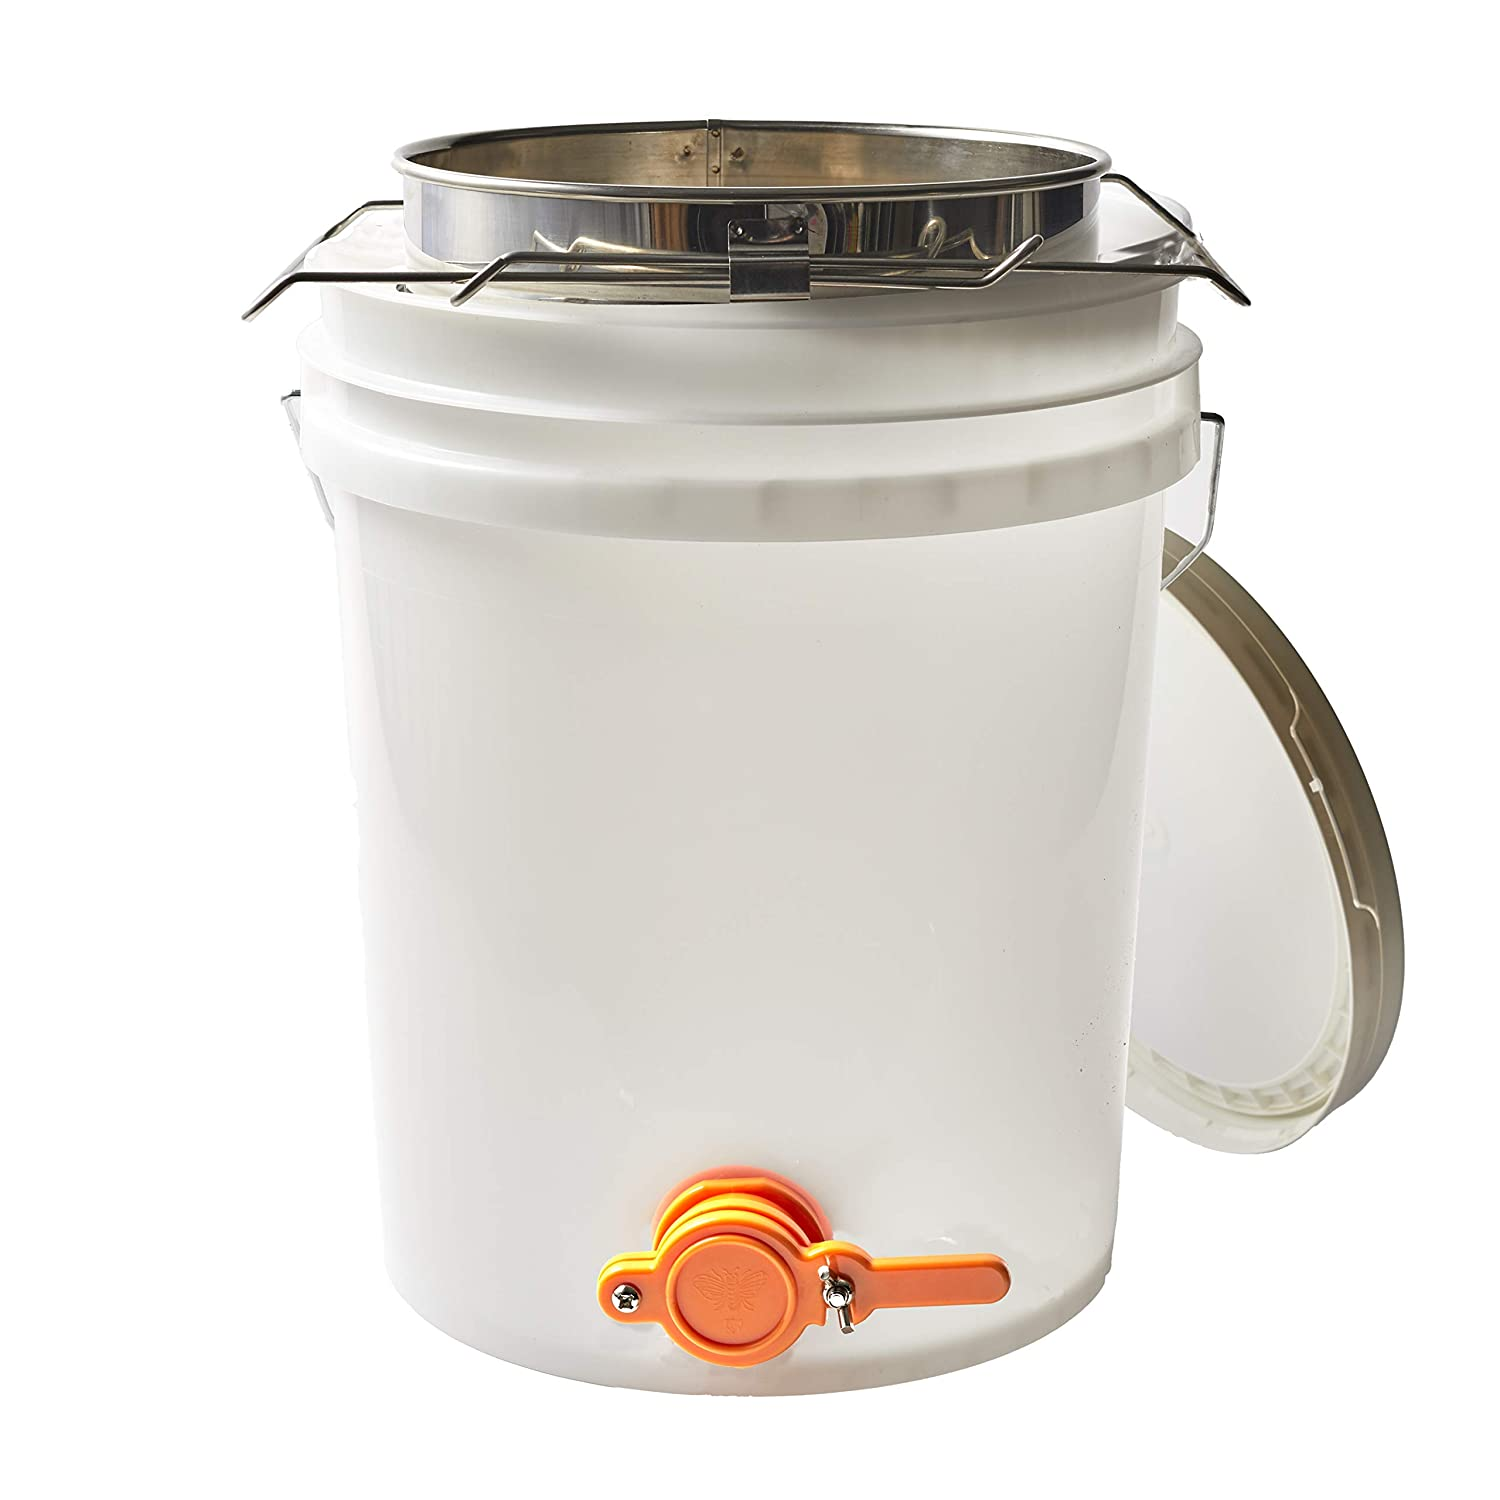 5 Gallon Beekeeping Honey Bucket Made with Food Grade Transparent Plastic, Bottling Valve, Stainless Steel Double Honey Strainer with Coarse and Fine Metal Filter, and Two Adjustable Mesh Strainers